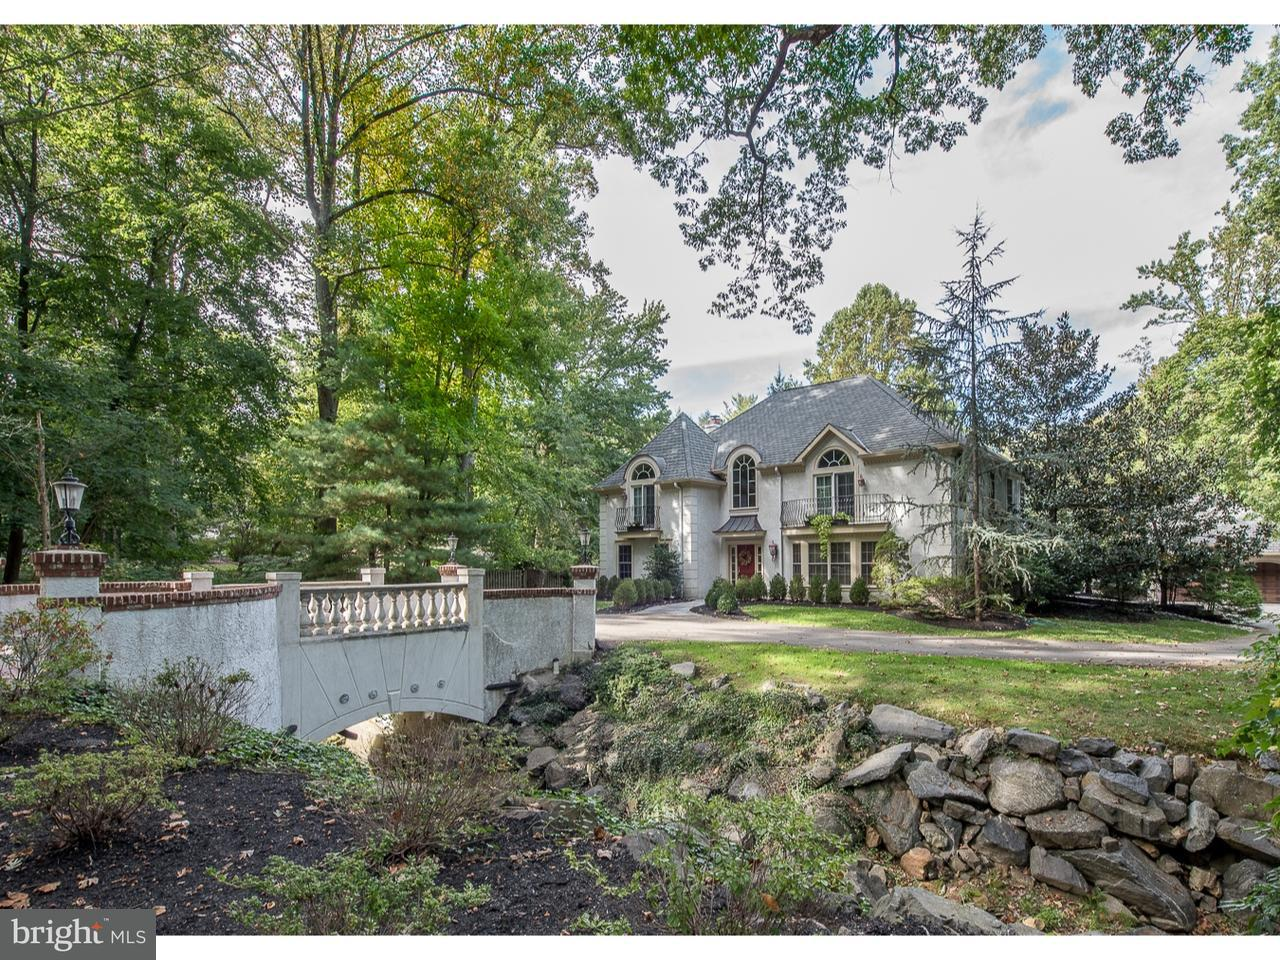 Single Family Home for Sale at 431 ROSE Lane Haverford, Pennsylvania 19041 United States